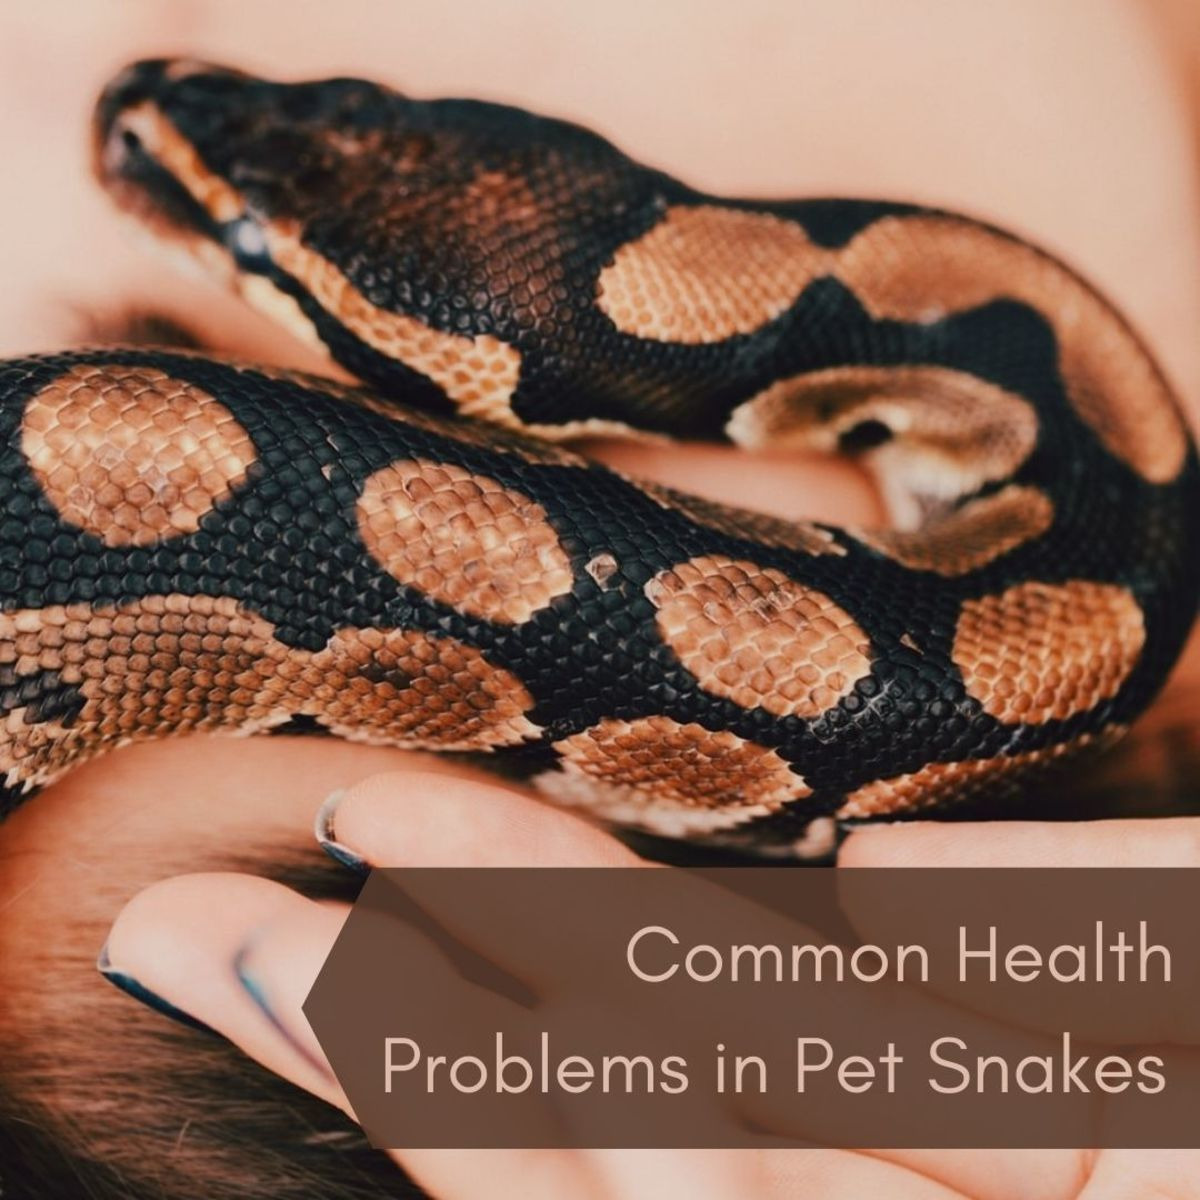 Common Health Problems in Pet Snakes